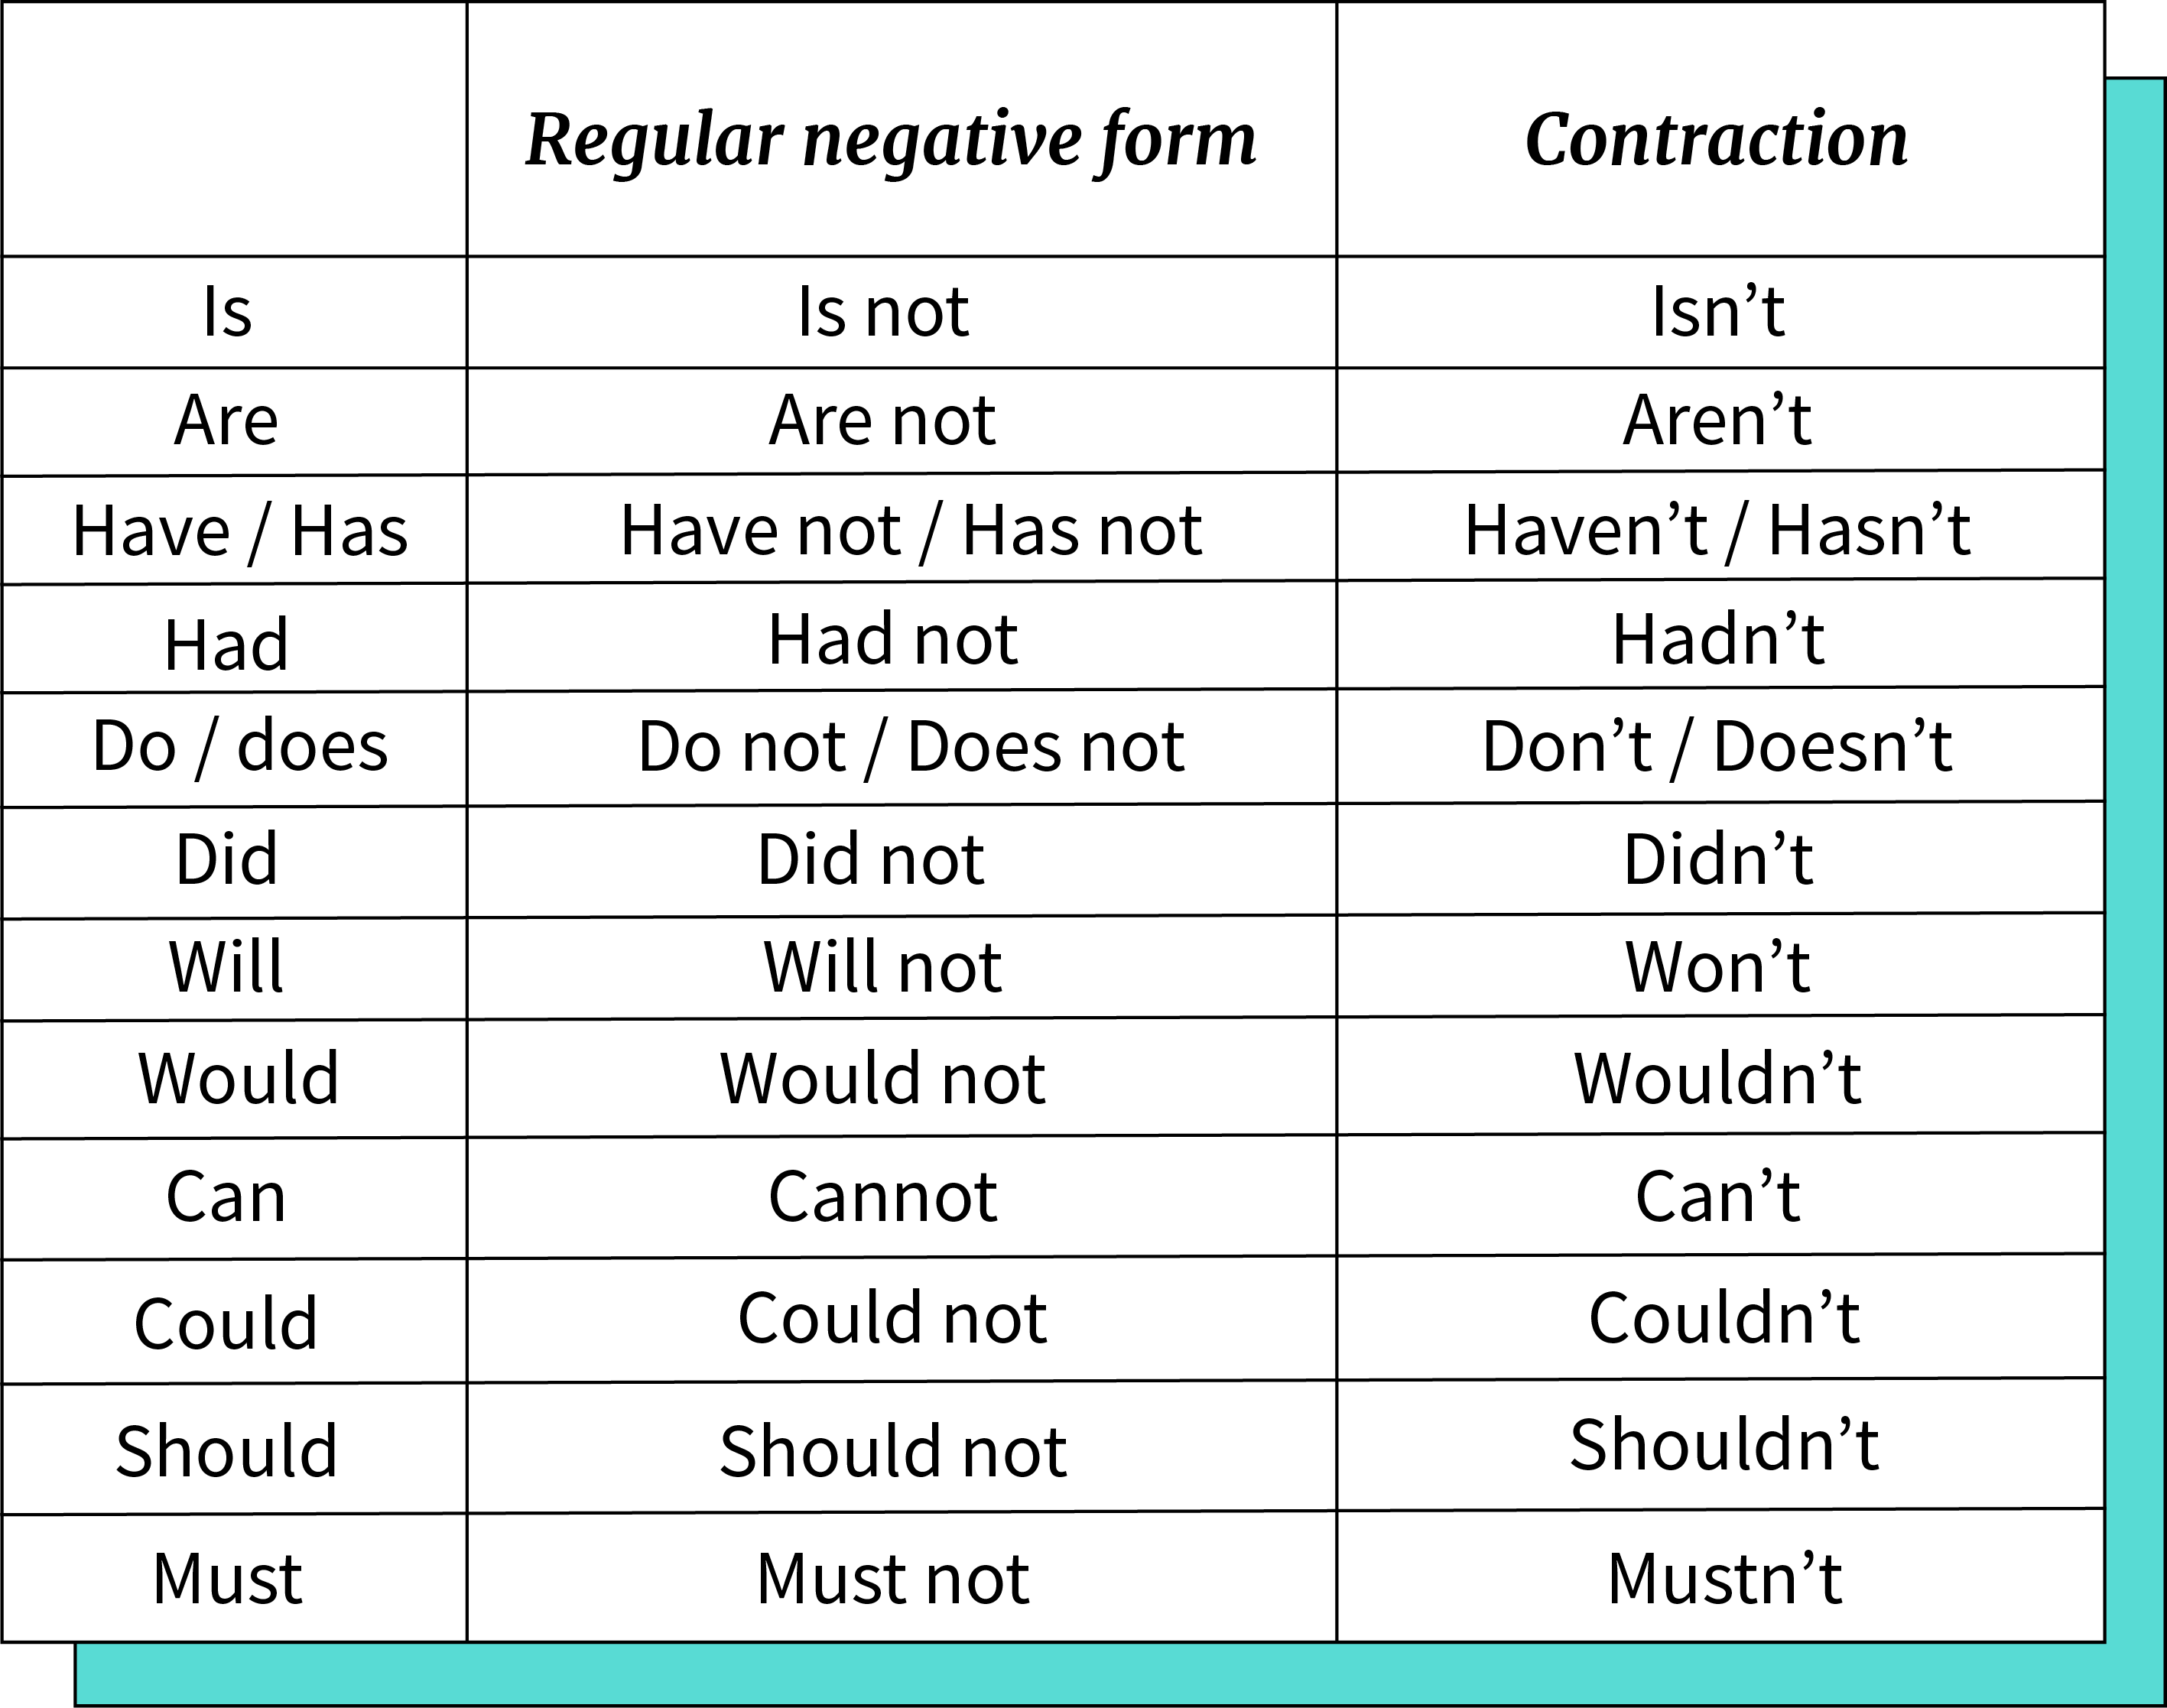 Tabla de contracciones de la estructura en negativo del verbo  To Be, Have, Has, Had, Do, Does y Does.